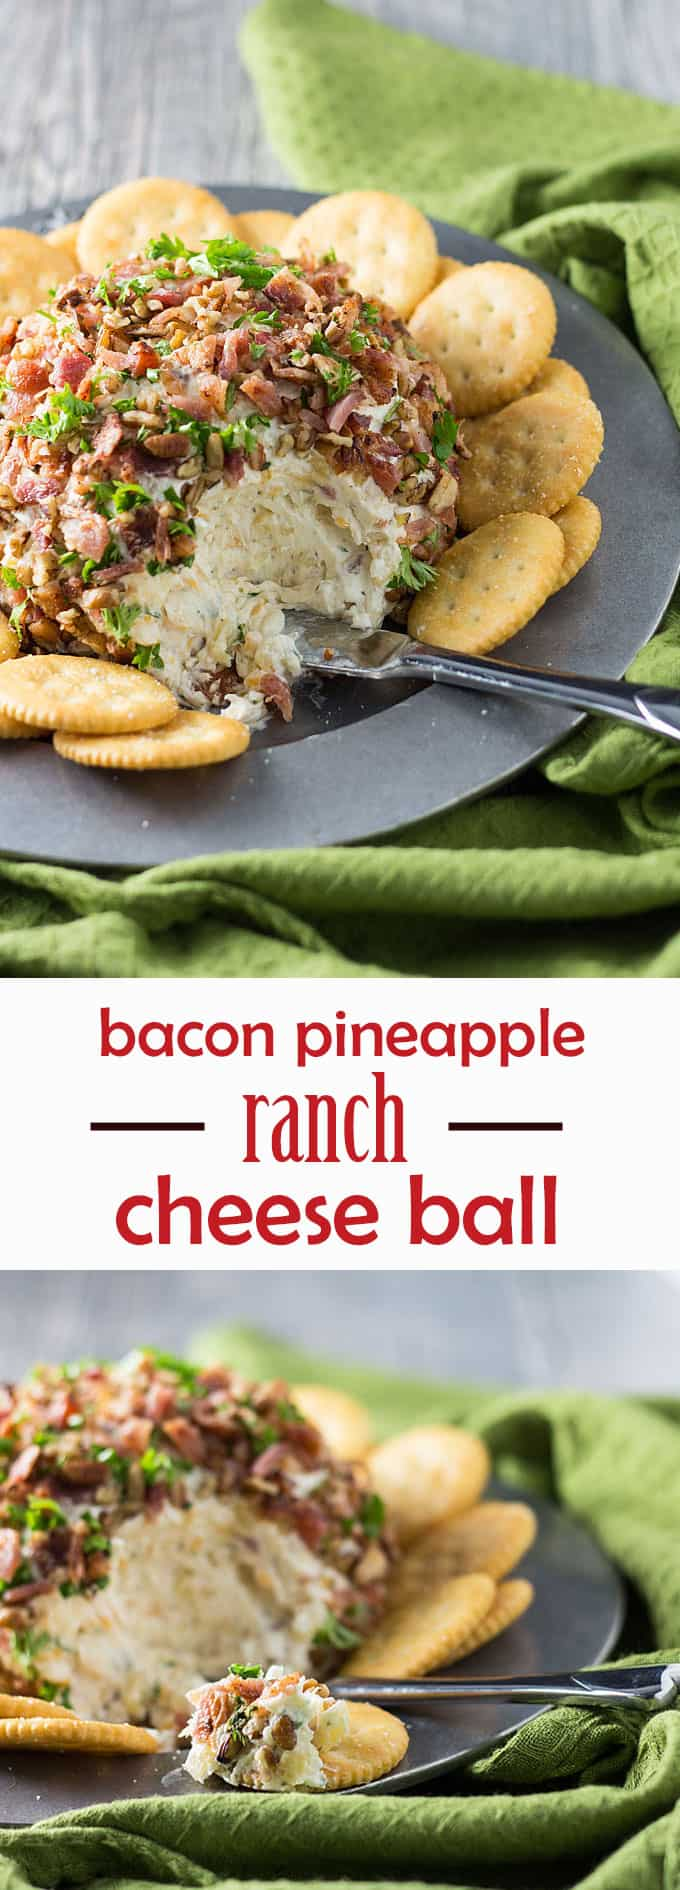 Bacon Pineapple Ranch Cheese Ball -- full of meaty bacon, sweet pineapple and spicy ranch flavors!